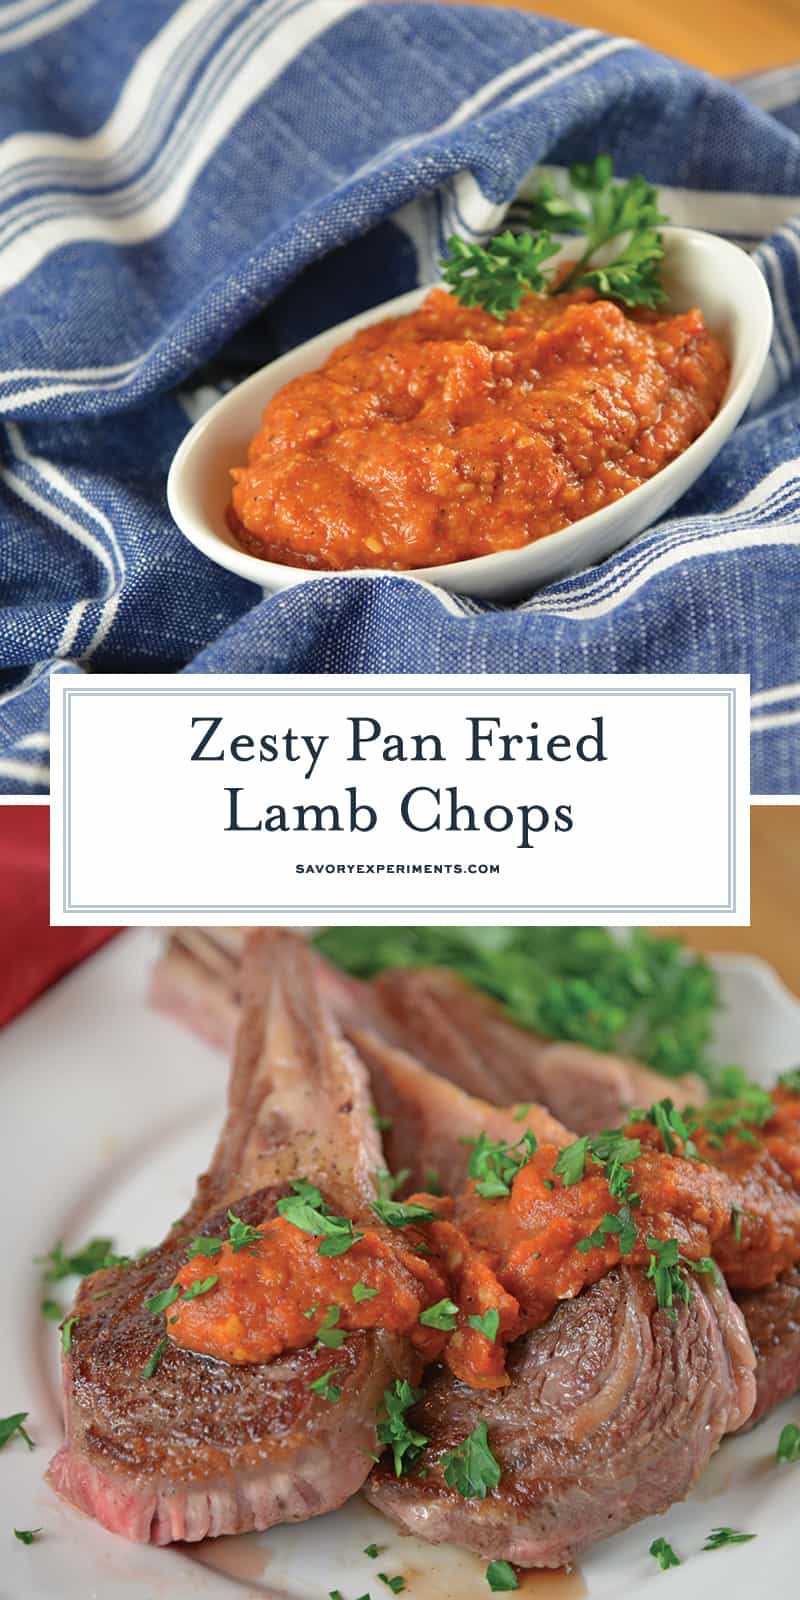 Pan Fried Lamb Chops, are one of the easiest dinners to make! This is a easy lamb recipe to serve for Easter dinner or any other night of the year! #panfriedlampchops #lambchopsrecipe #lamblollipops savoryexperiments.com